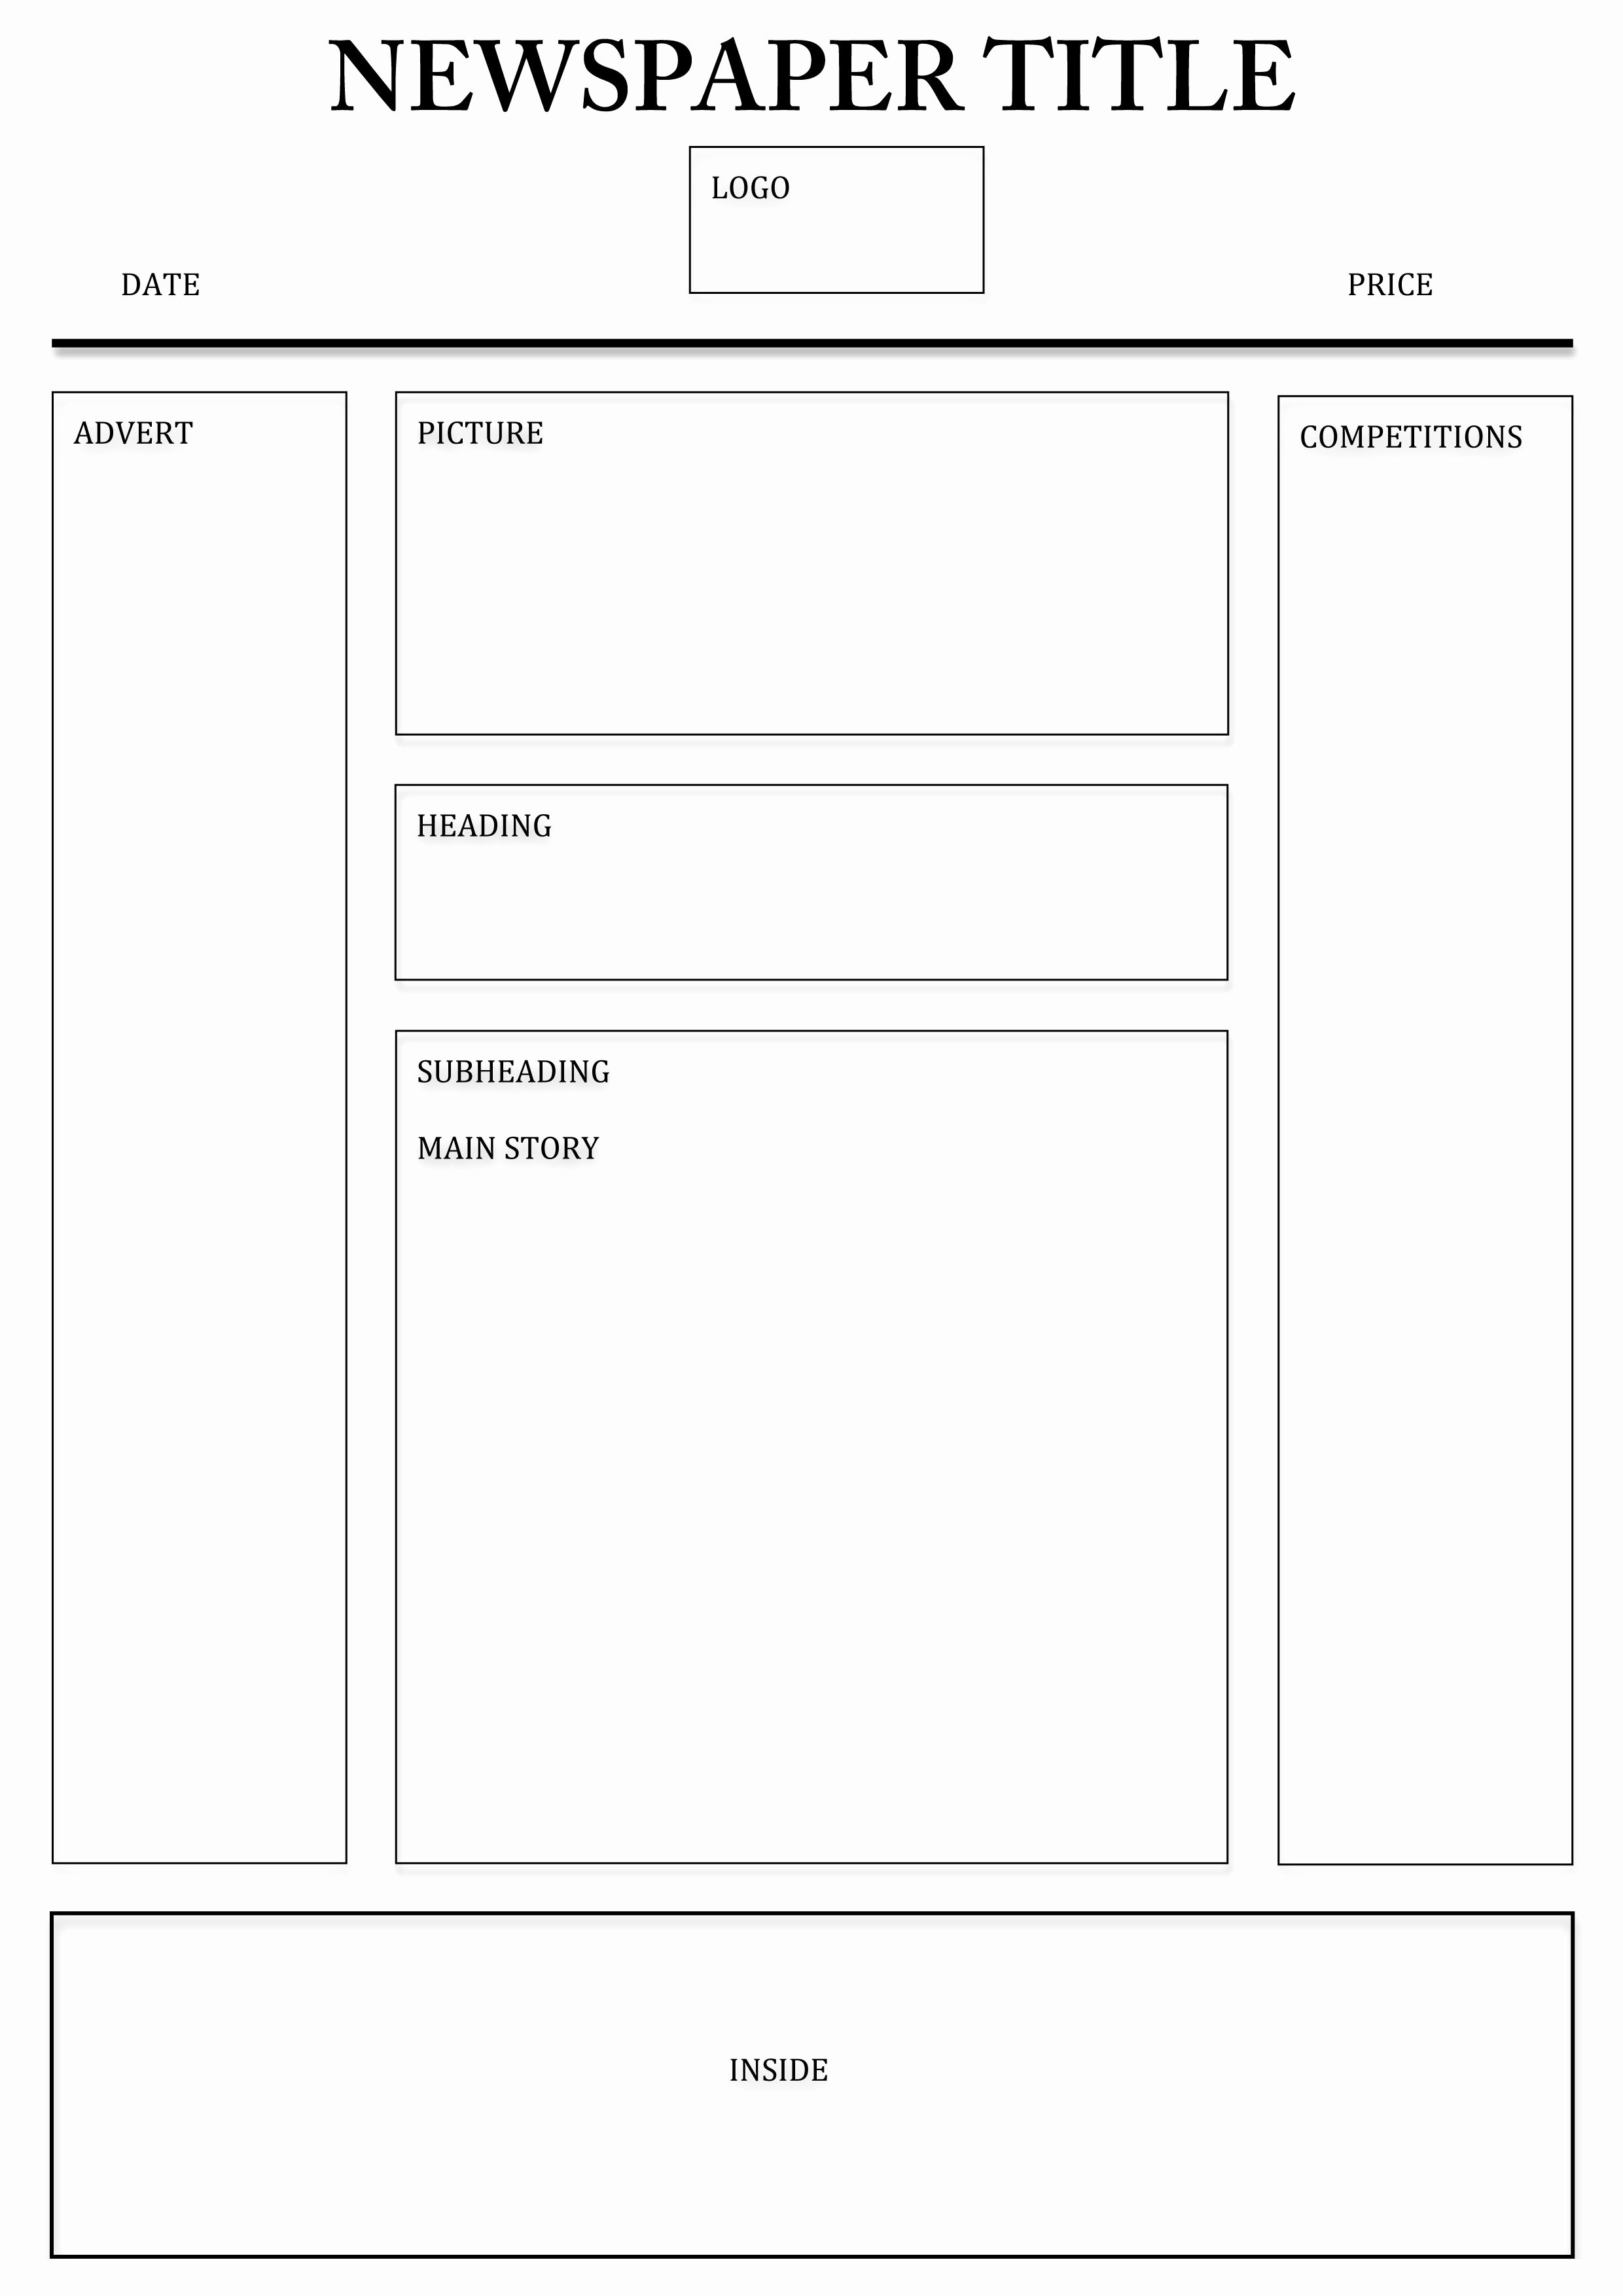 Free Newspaper Template for Students Awesome Newspaper Front Page Layout Template